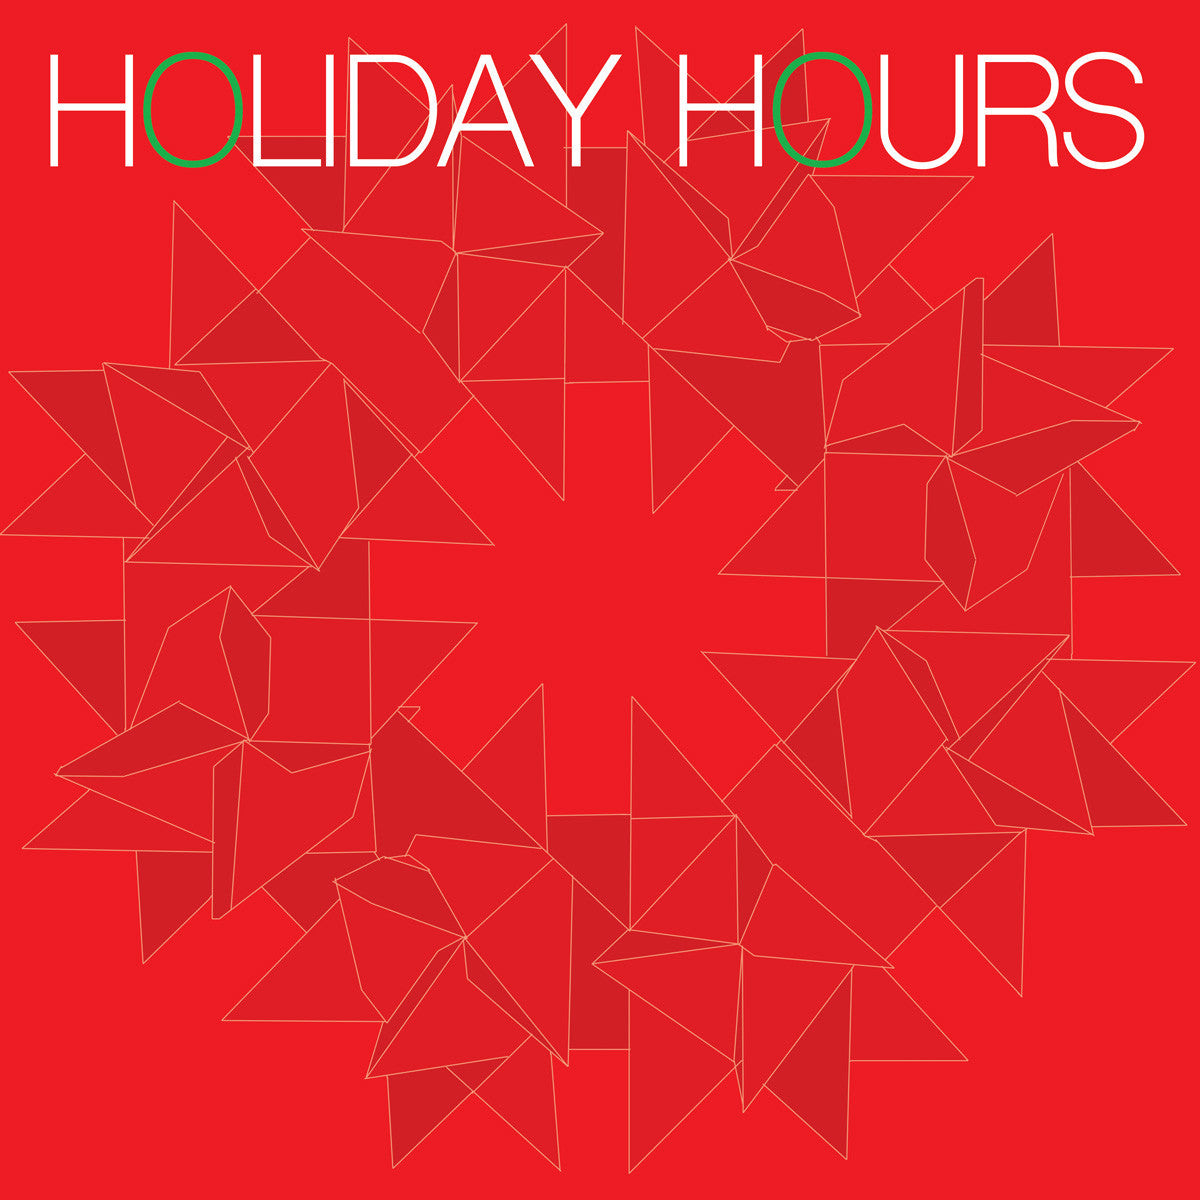 Holiday Hours December 2015